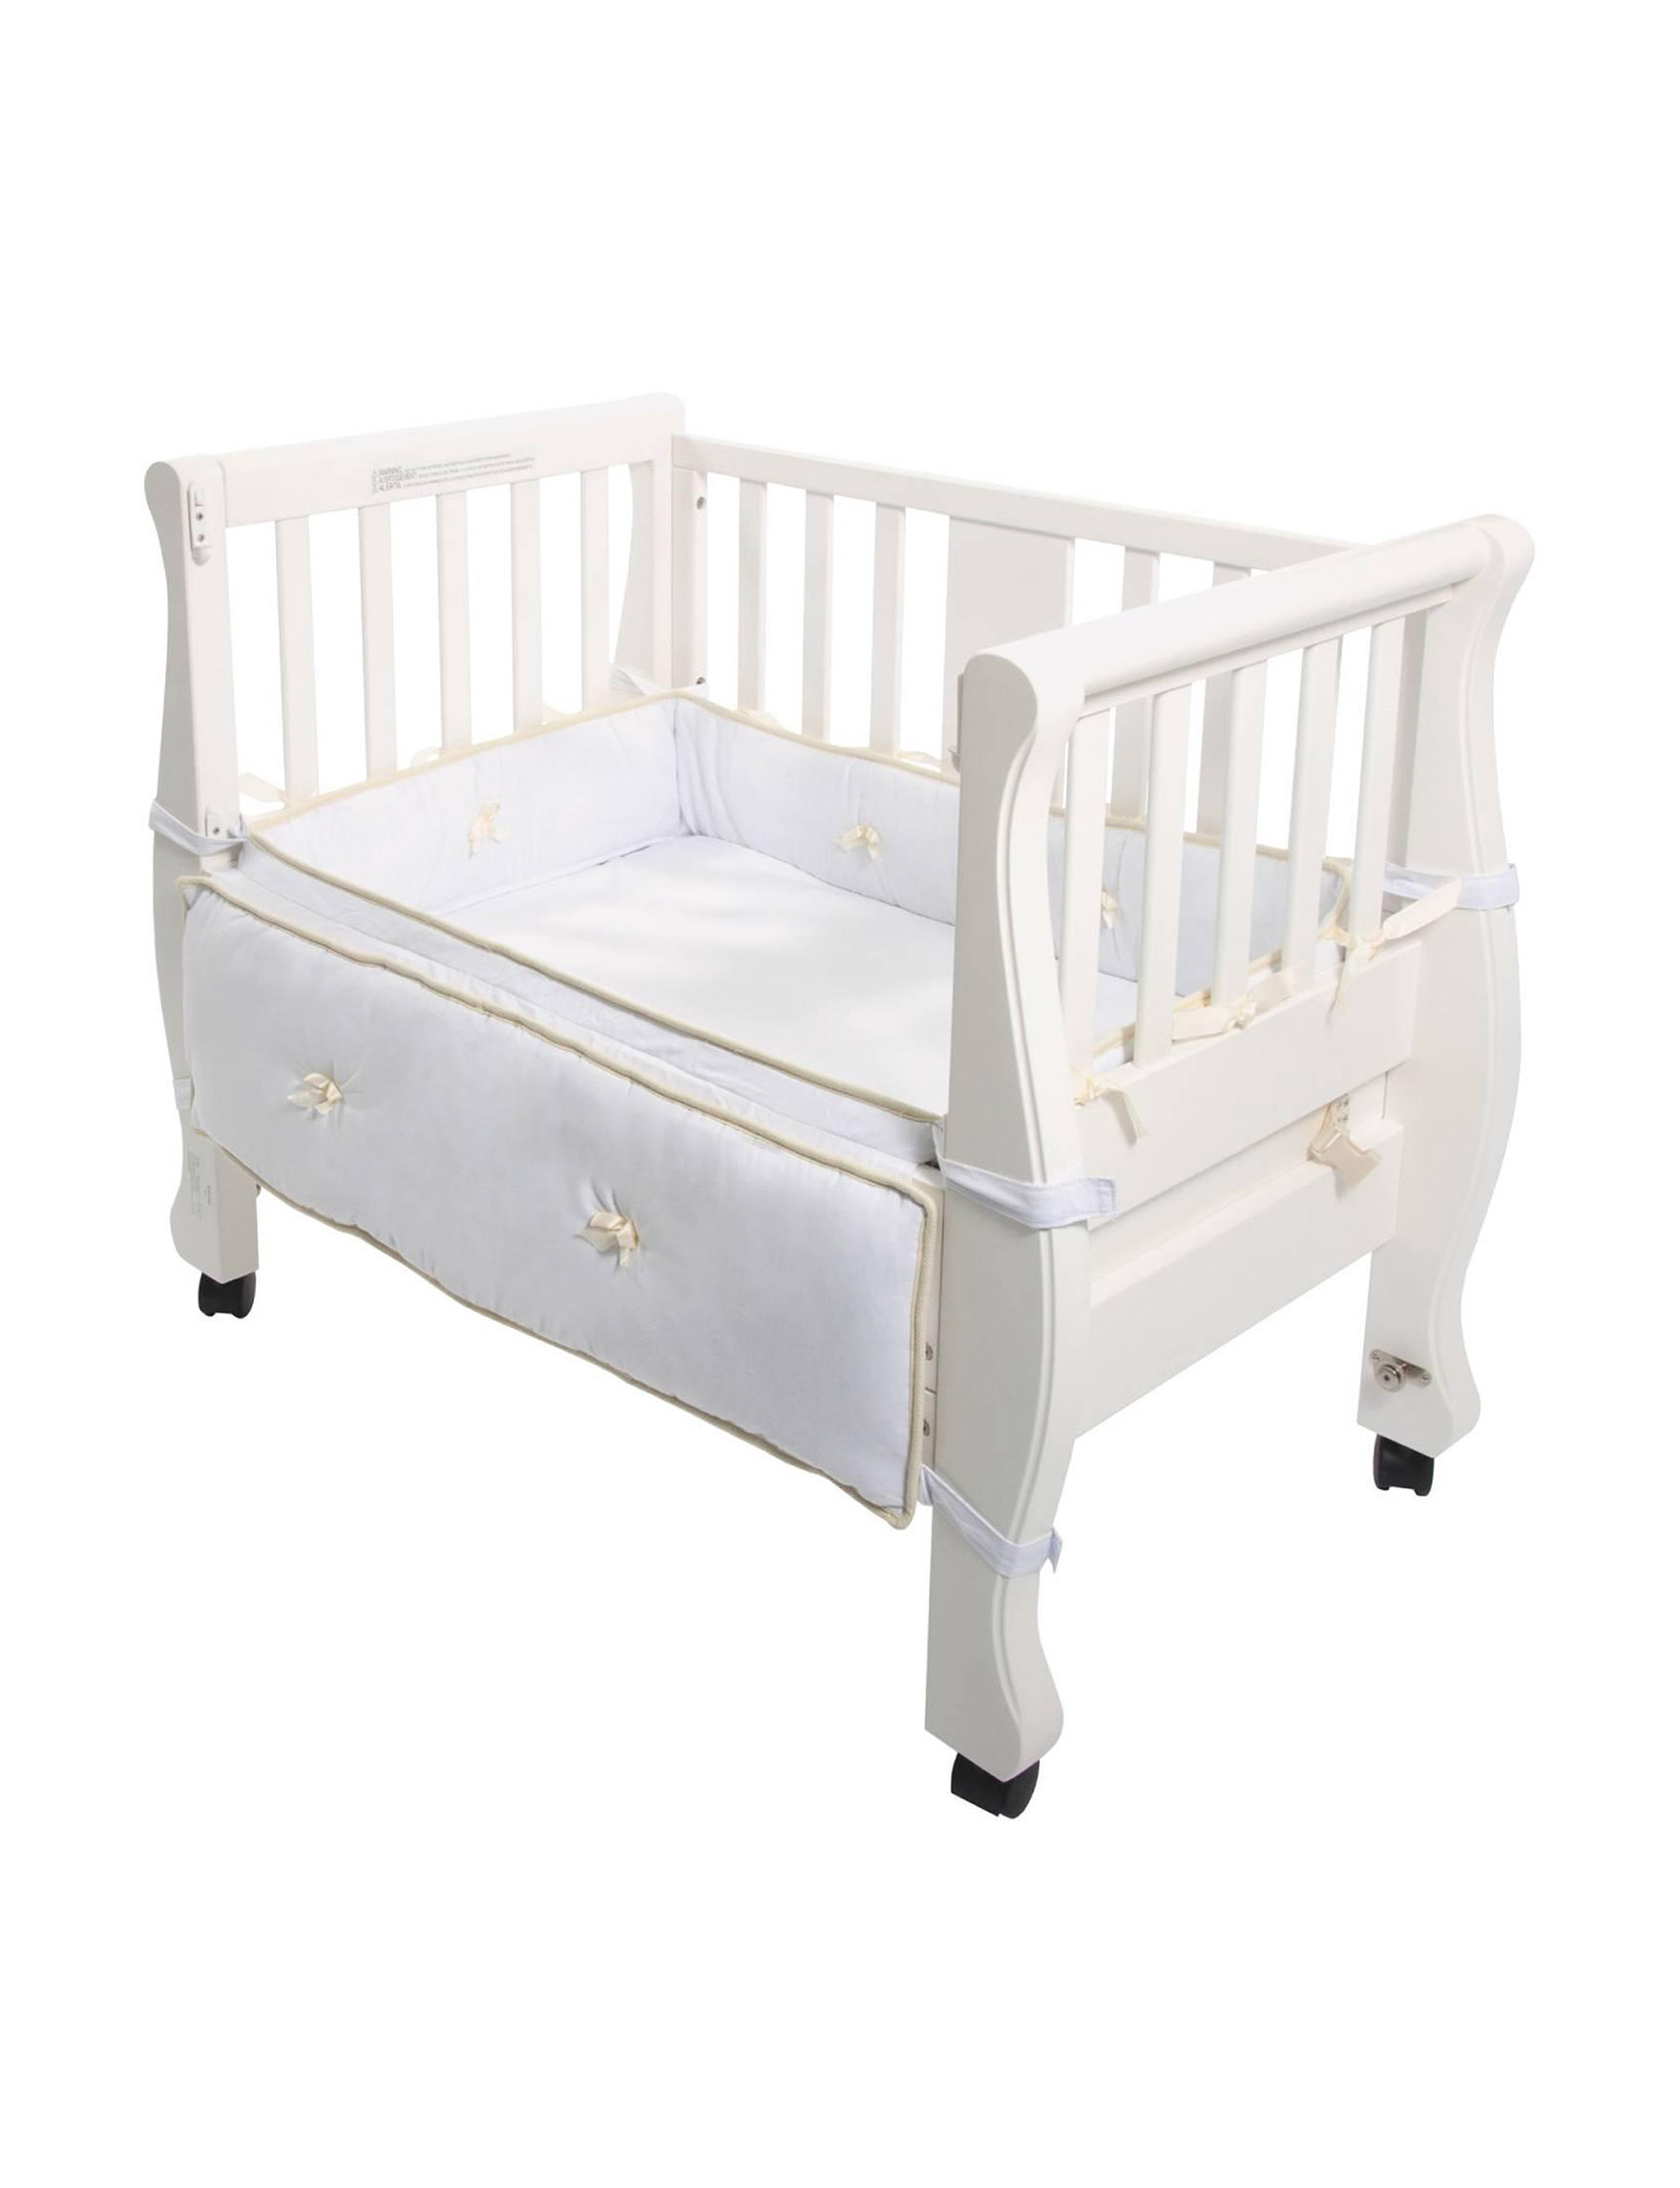 Arms Reach White Beds & Headboards